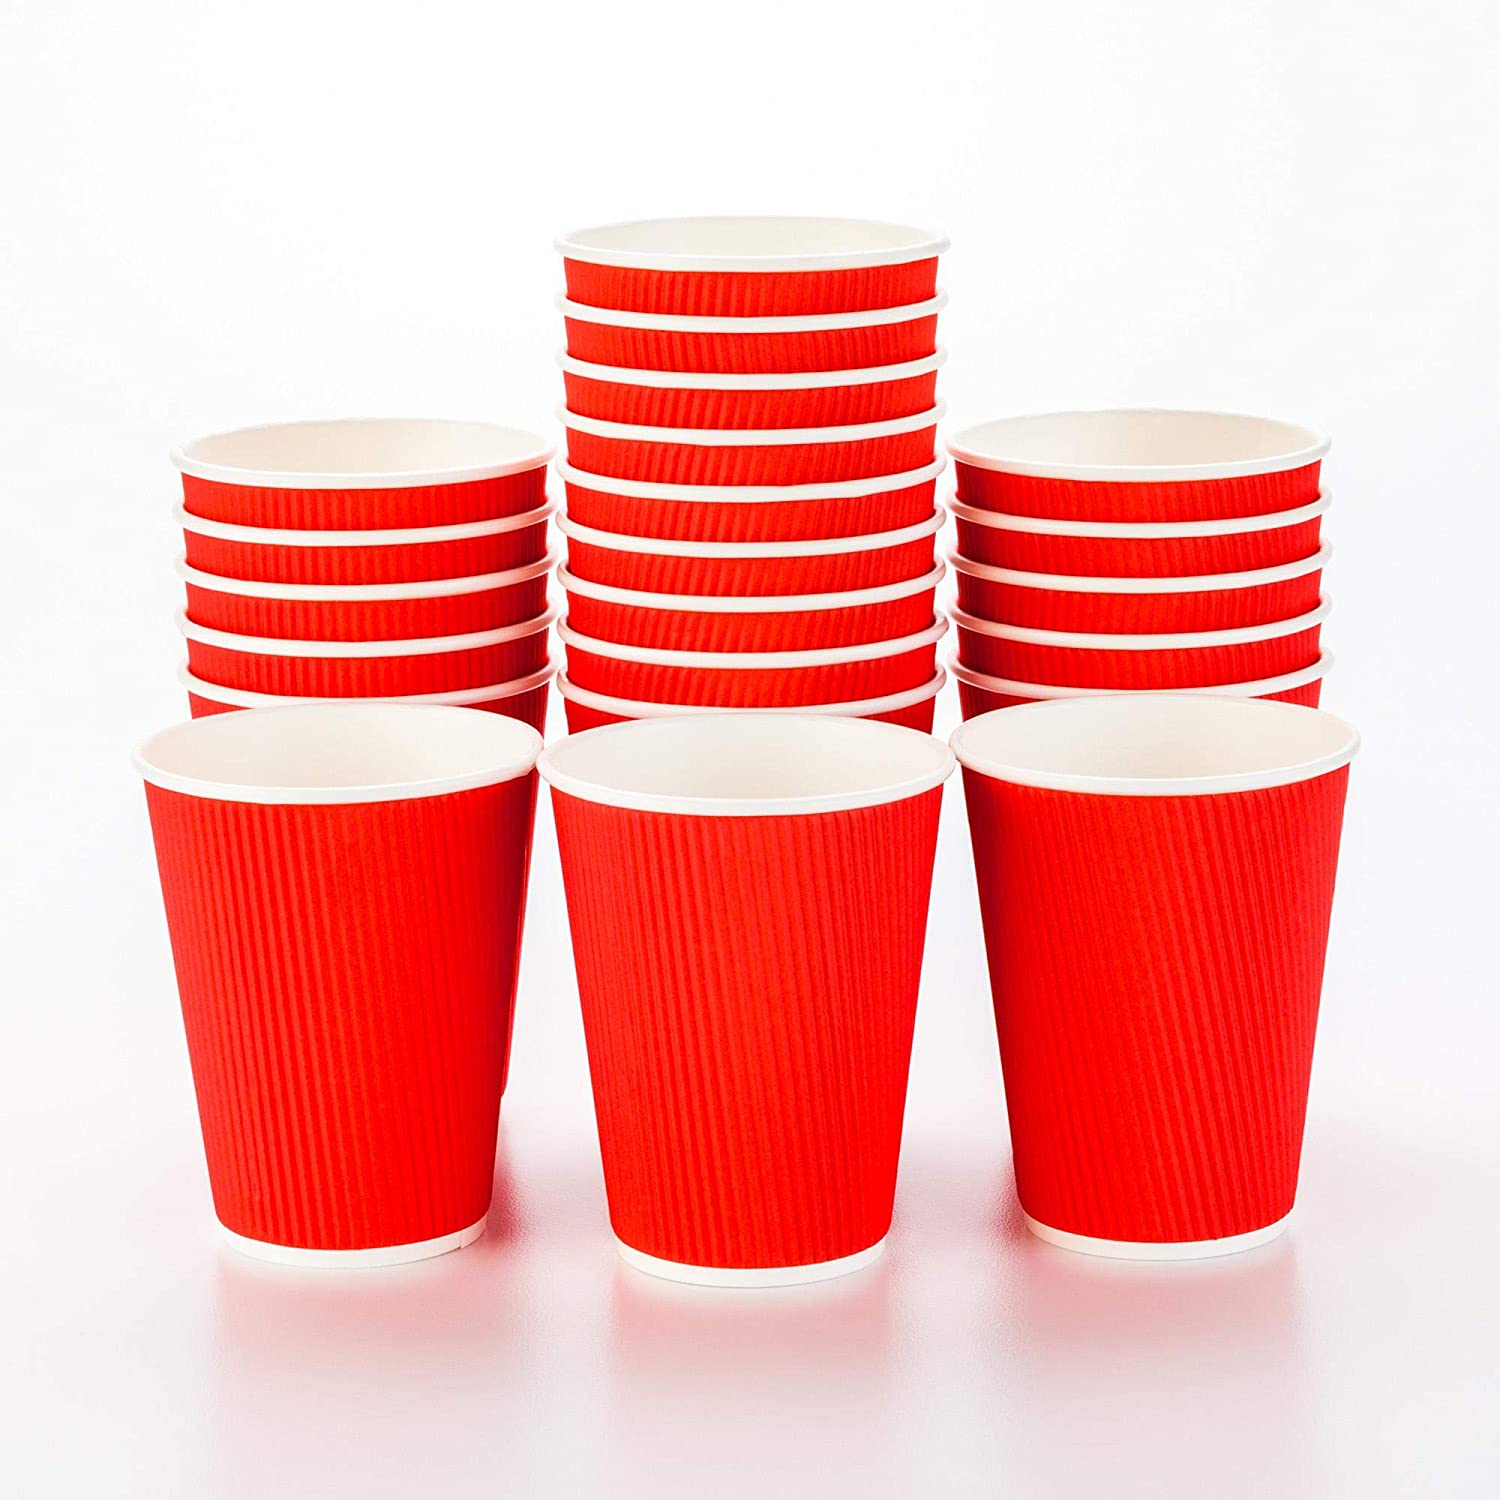 500-CT Disposable Red 12-OZ Hot Beverage Cups with Ripple Wall Design: No Need for Sleeves - Perfect for Cafes - Eco-Friendly Recyclable Paper - Insulated - Wholesale Takeout Coffee Cup